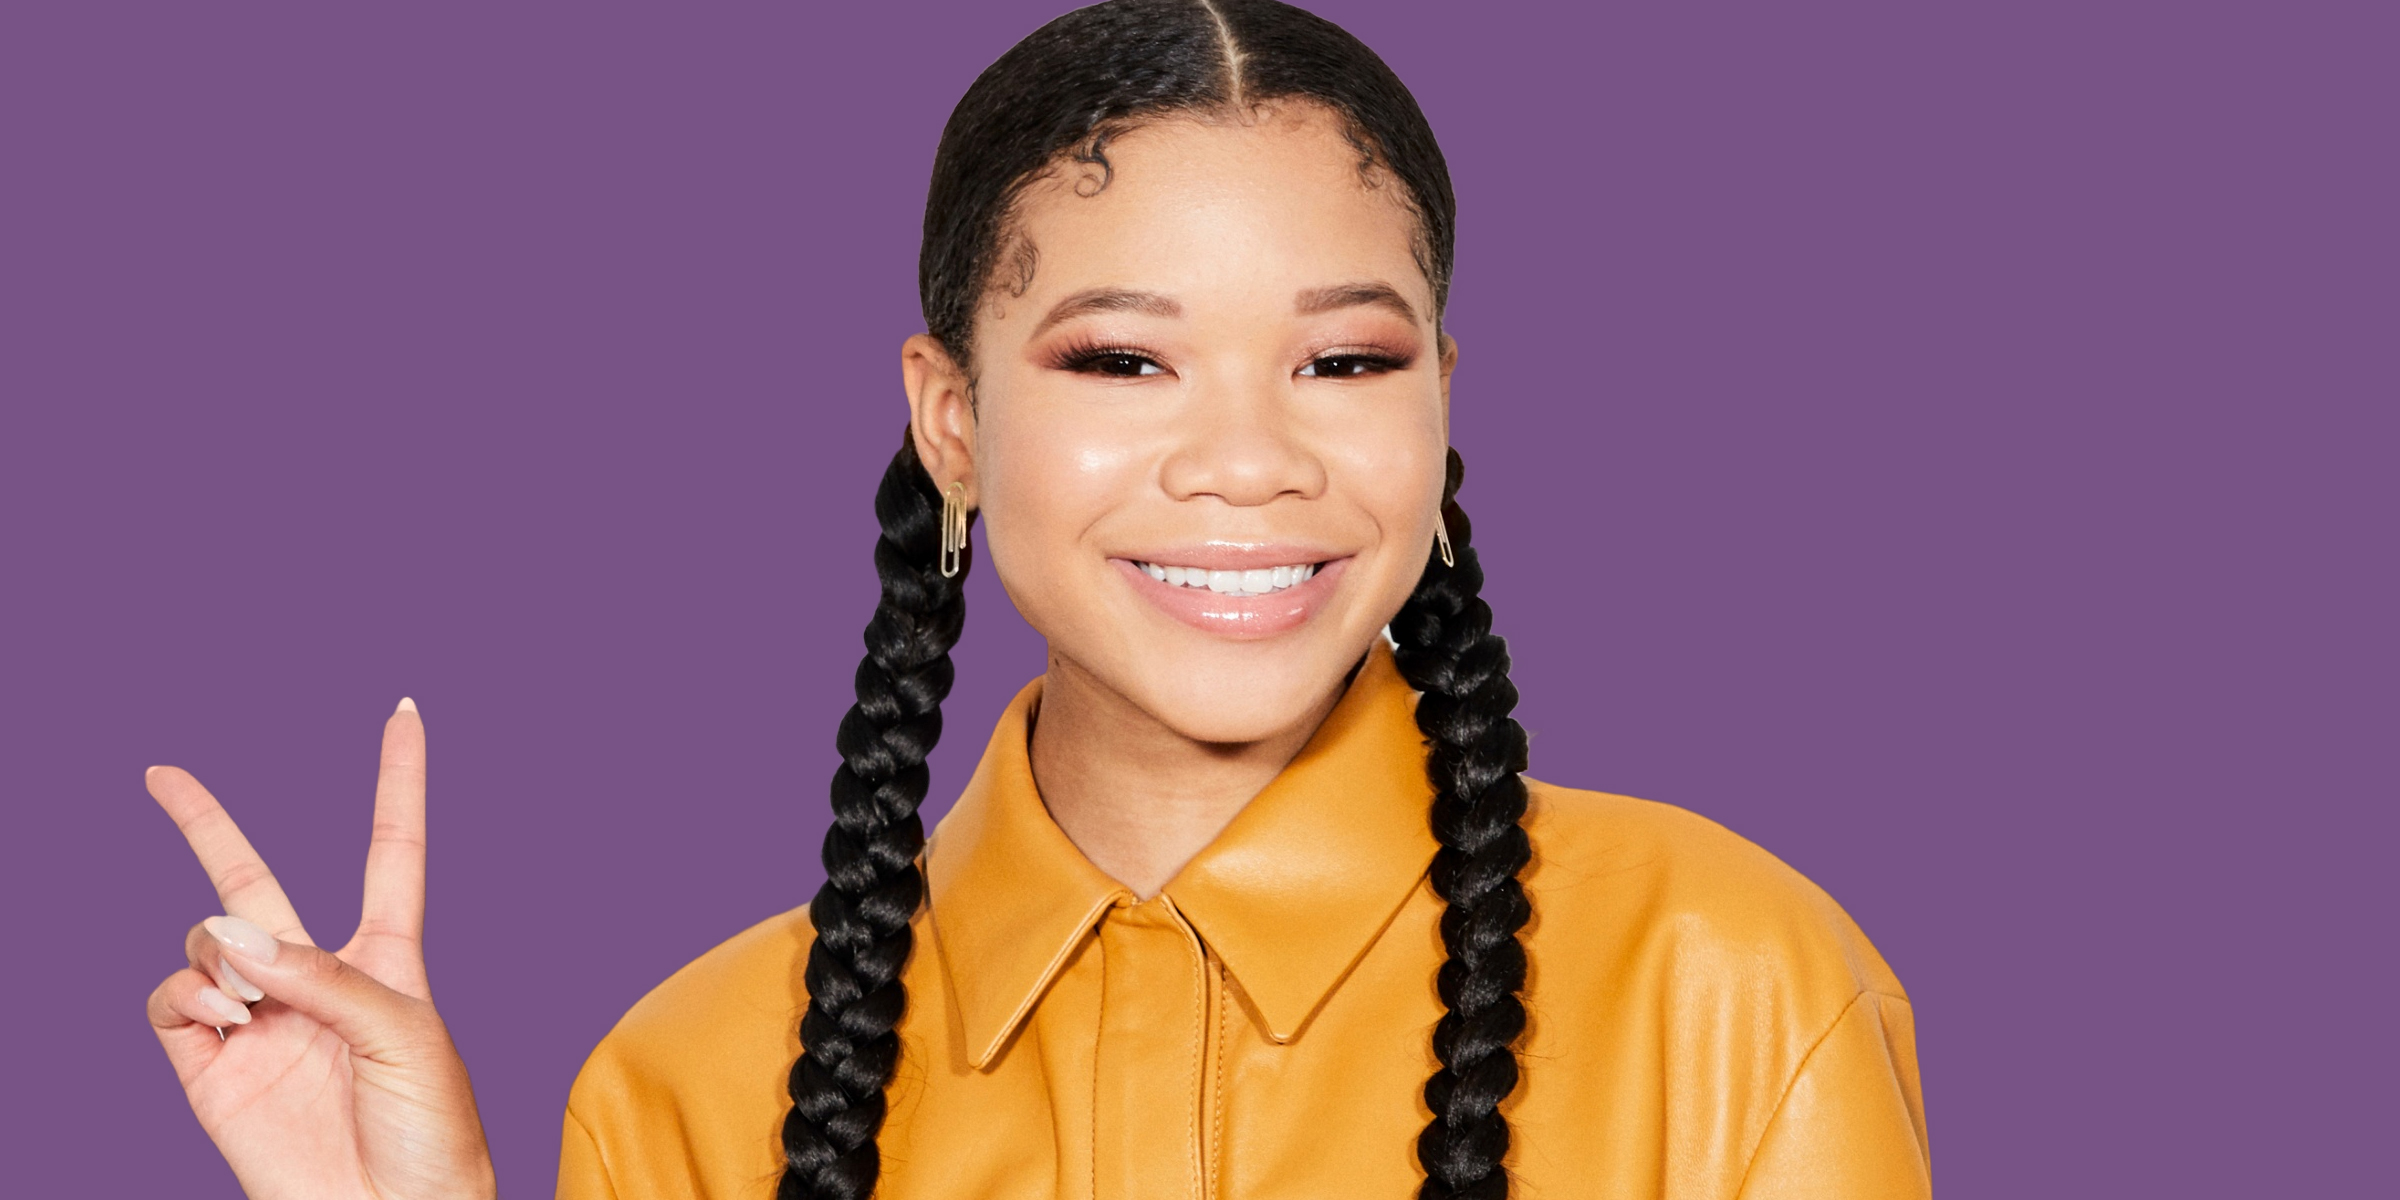 'Euphoria' star Storm Reid does an amazing Oprah impression